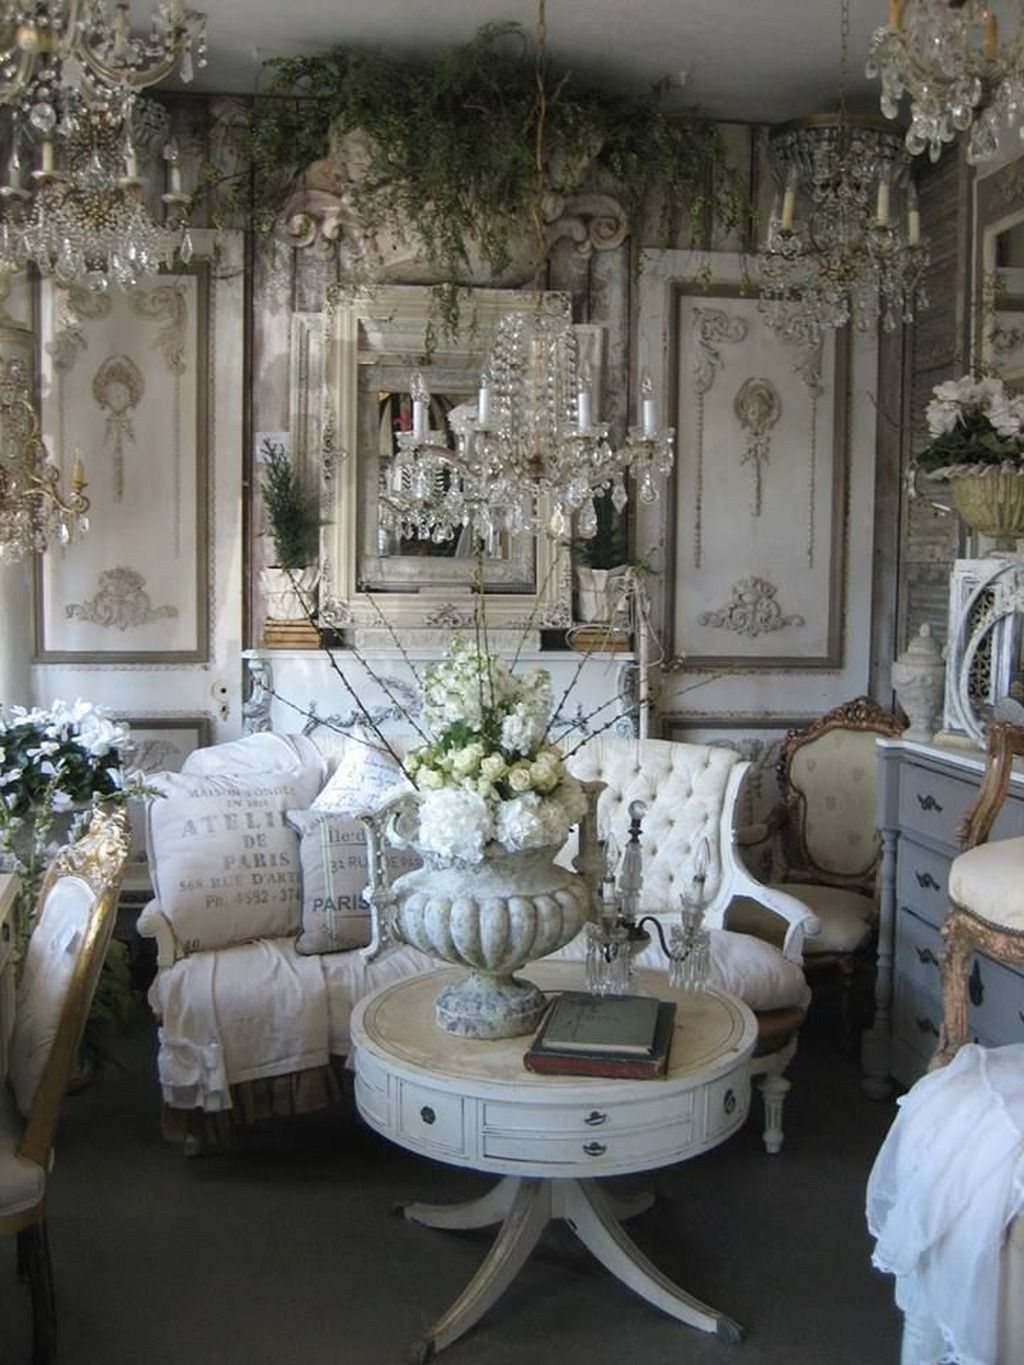 Cozy French Country Living Room Decor Ideas 46 Romantic Home